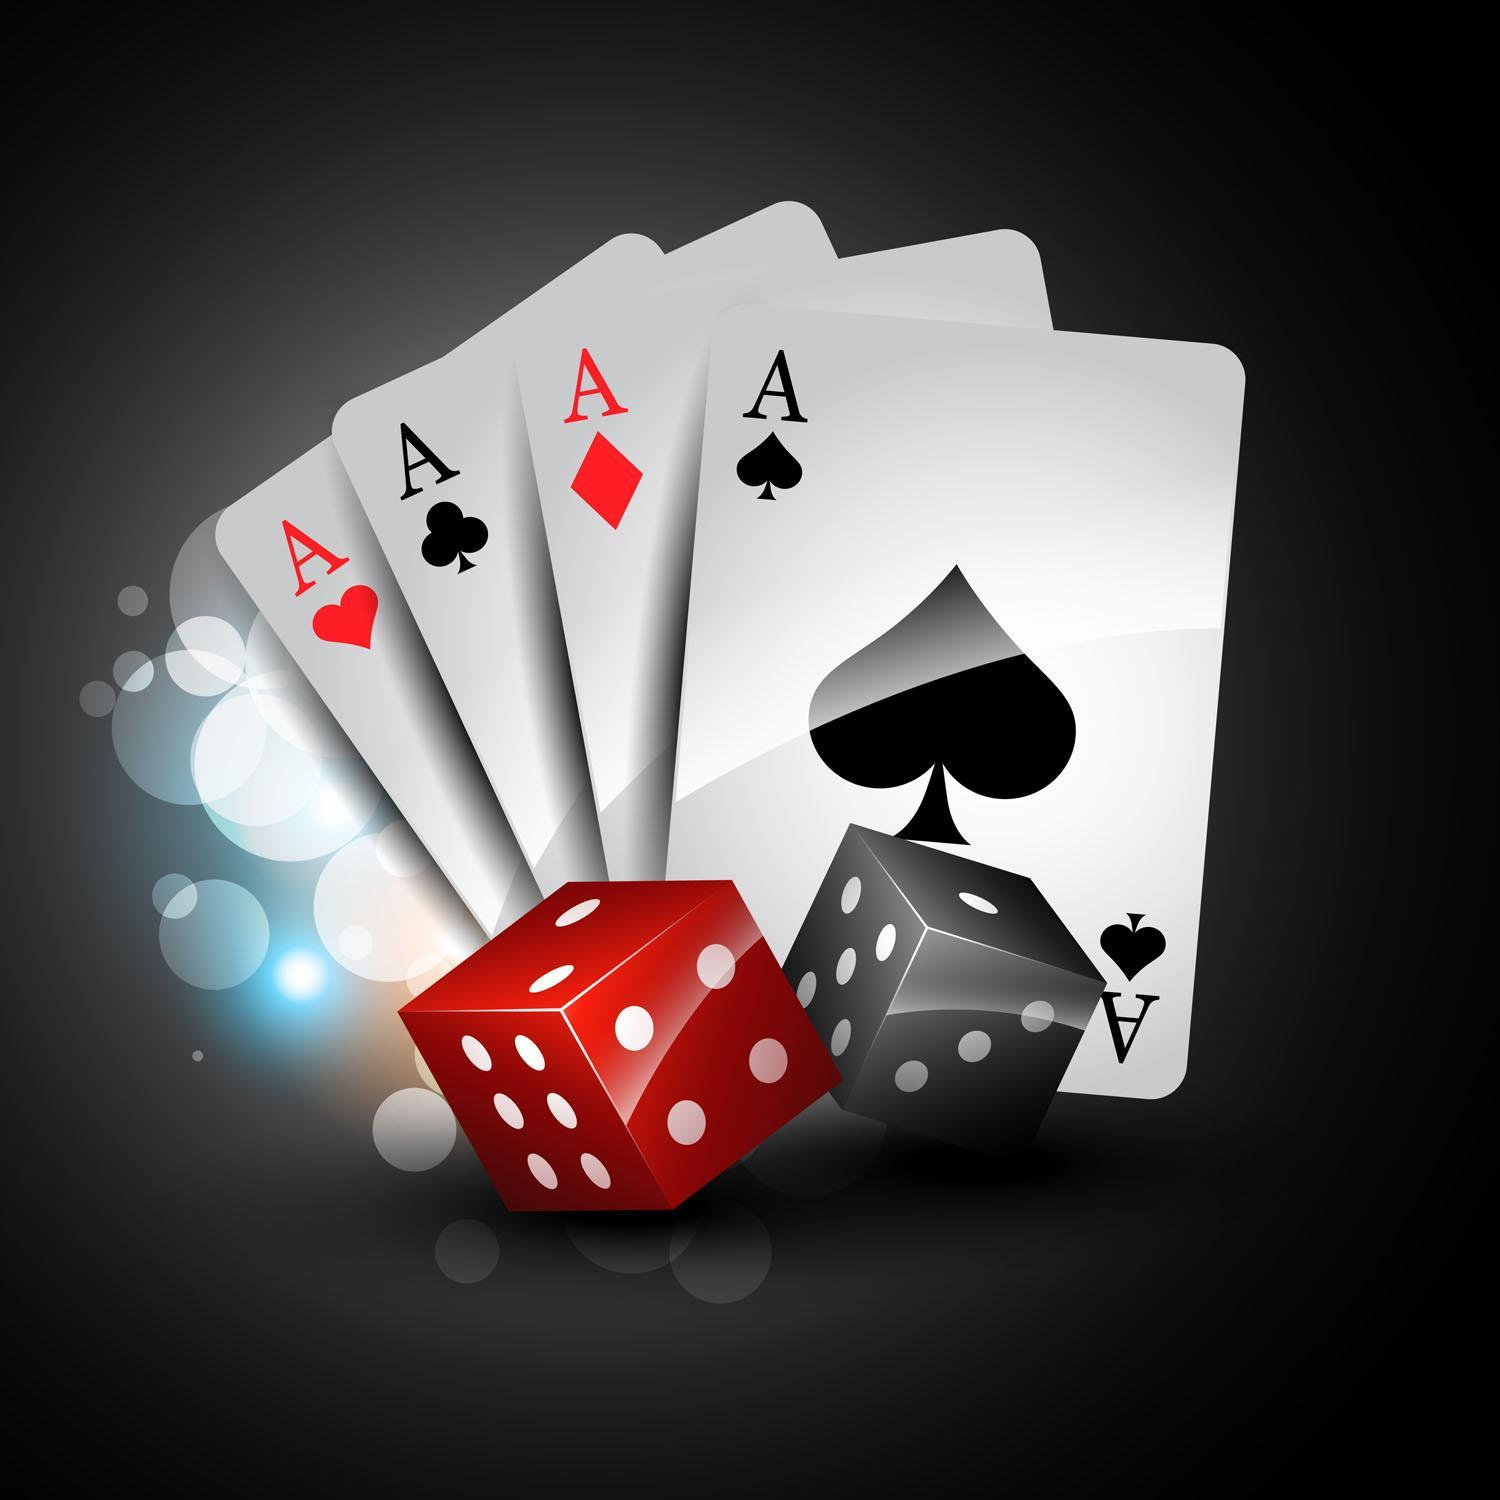 Poker Cards Wallpapers - Top Free Poker Cards Backgrounds - WallpaperAccess